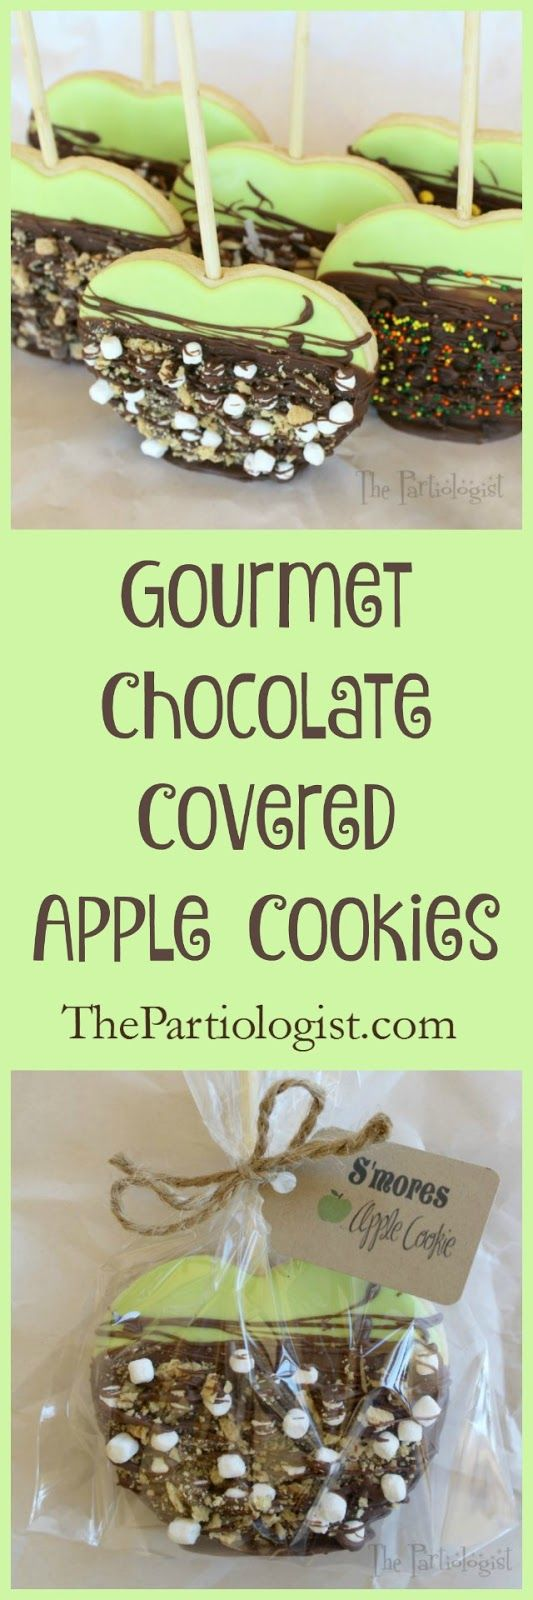 Without hesitation, I can say a chocolate covered caramel apple is one of my favorite desserts. Even with all the sweets in my kitchen, I ...